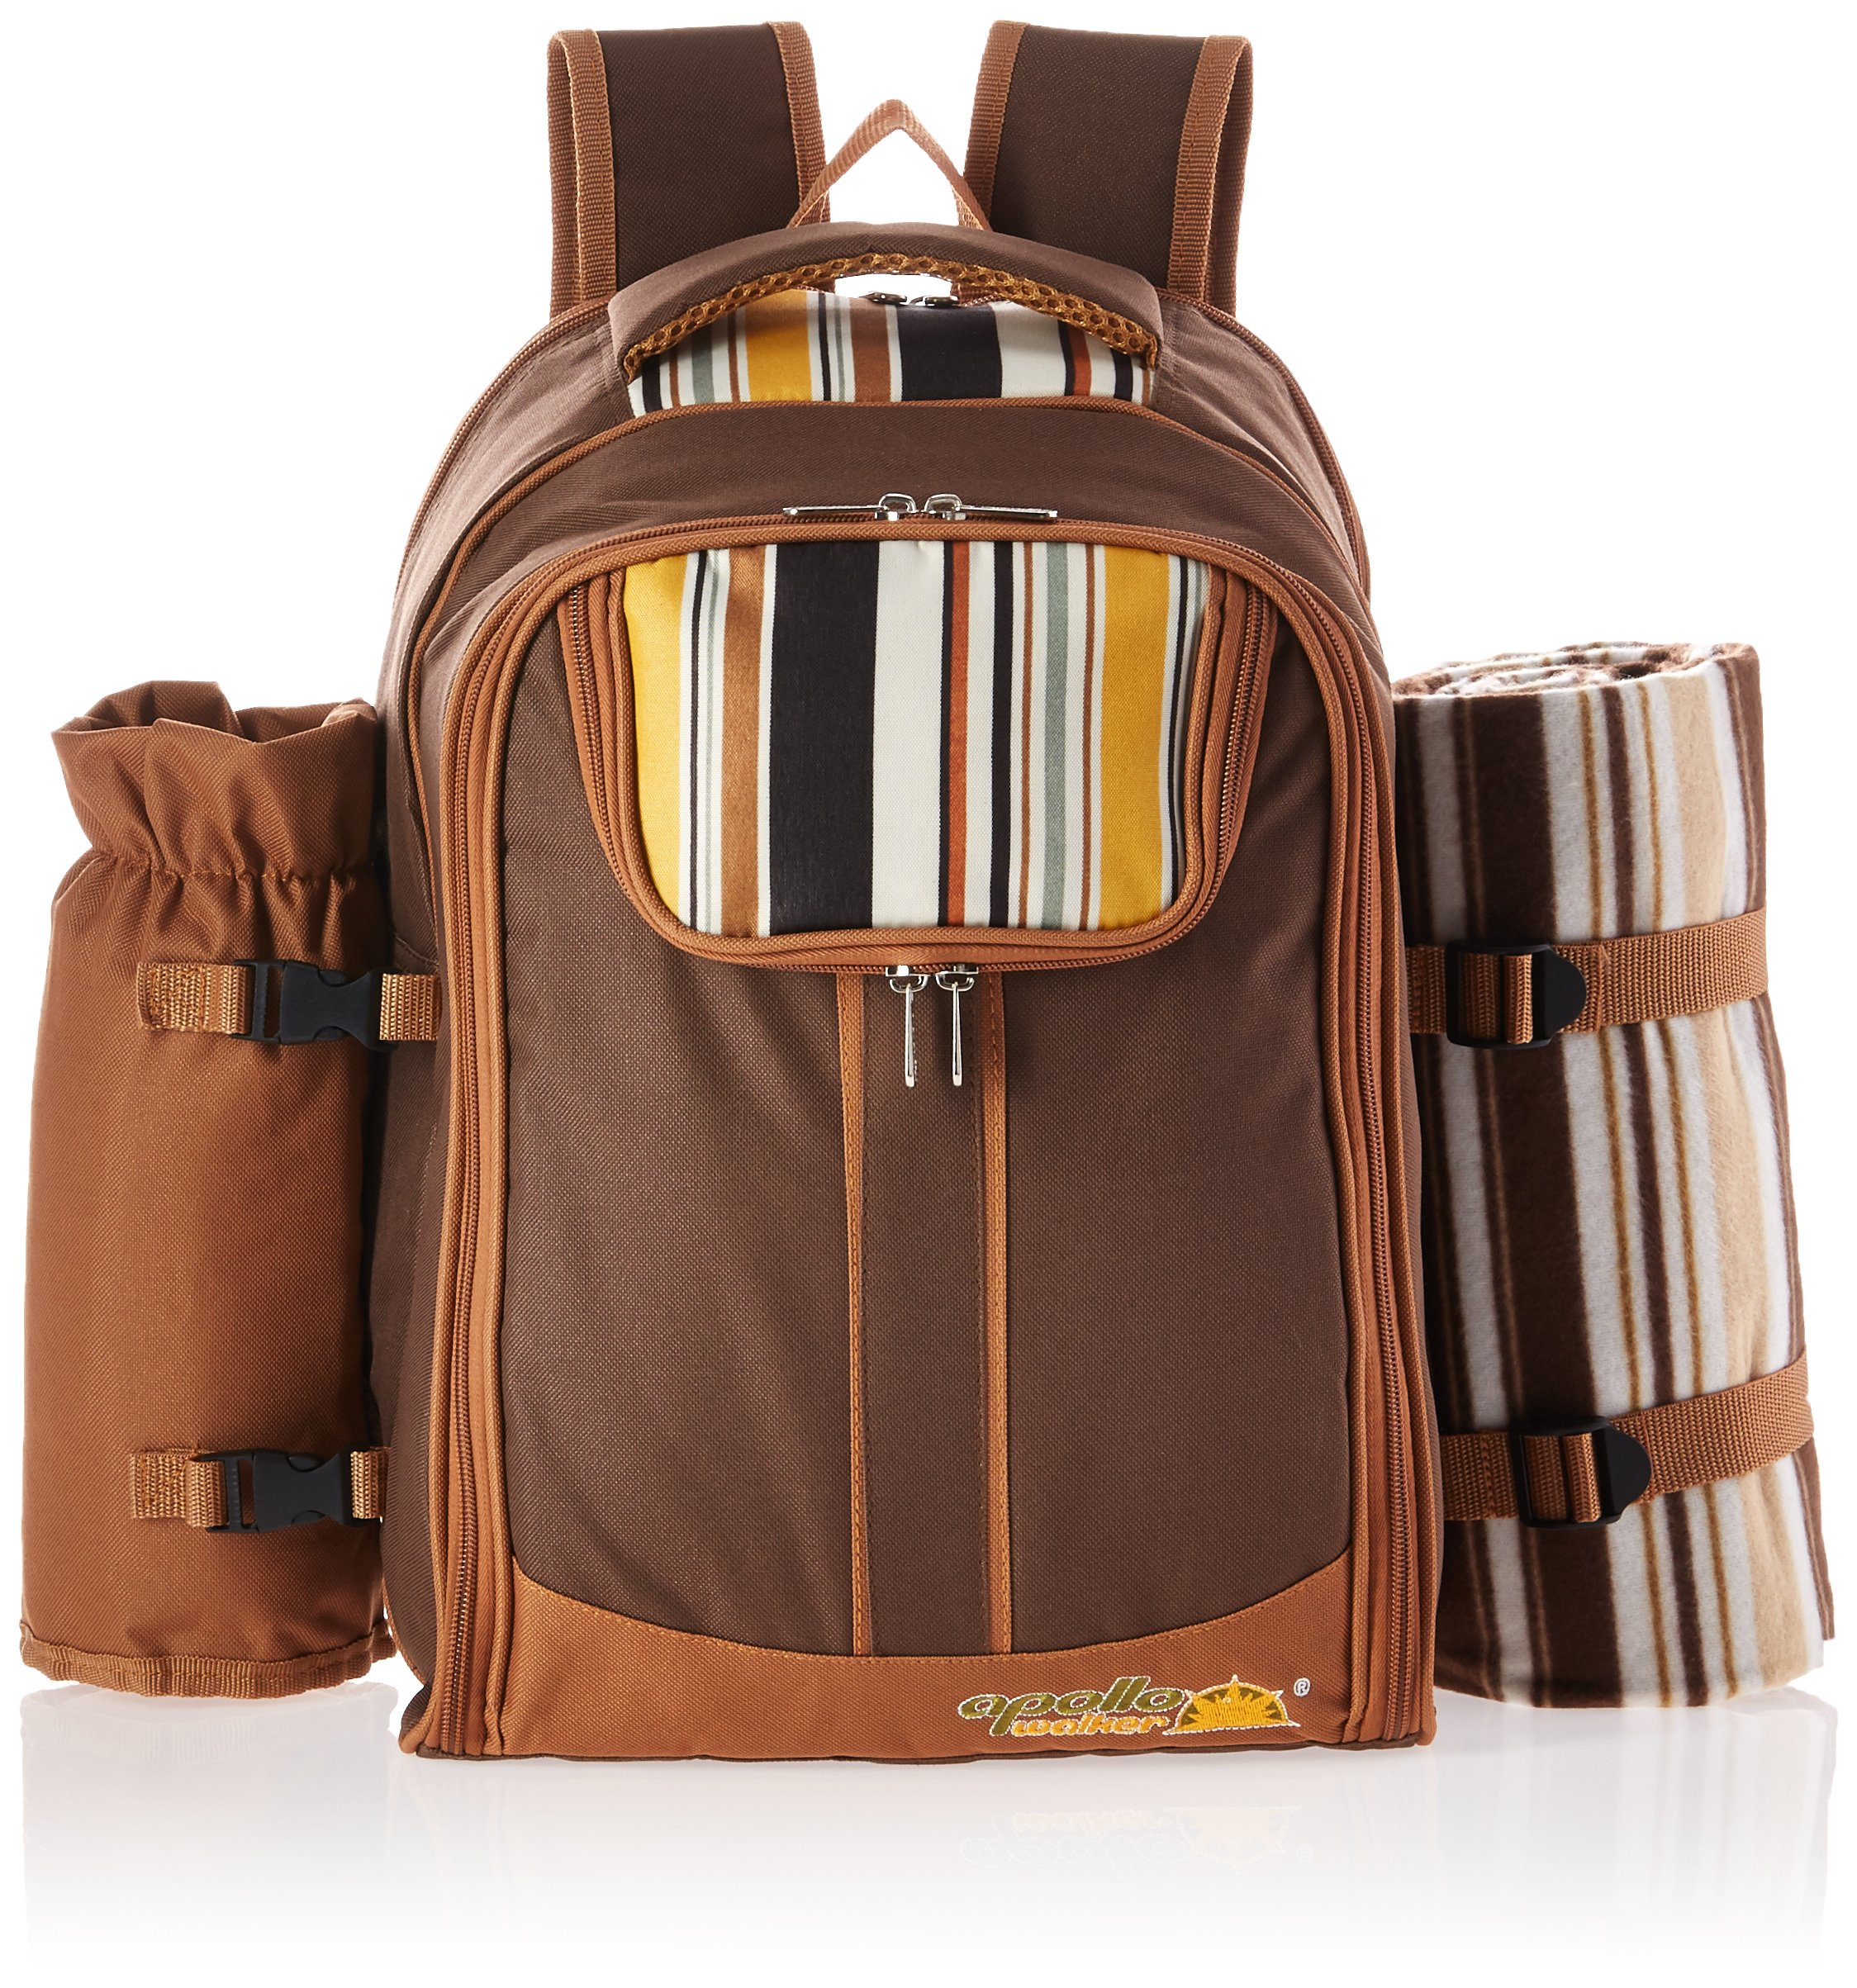 Ferlin Picnic Backpack for 4 with Cooler Compartment, Detachable Bottle/Wine Holder, Fleece Blanket, Plates and Cutlery Set (Coffee) by Ferlin